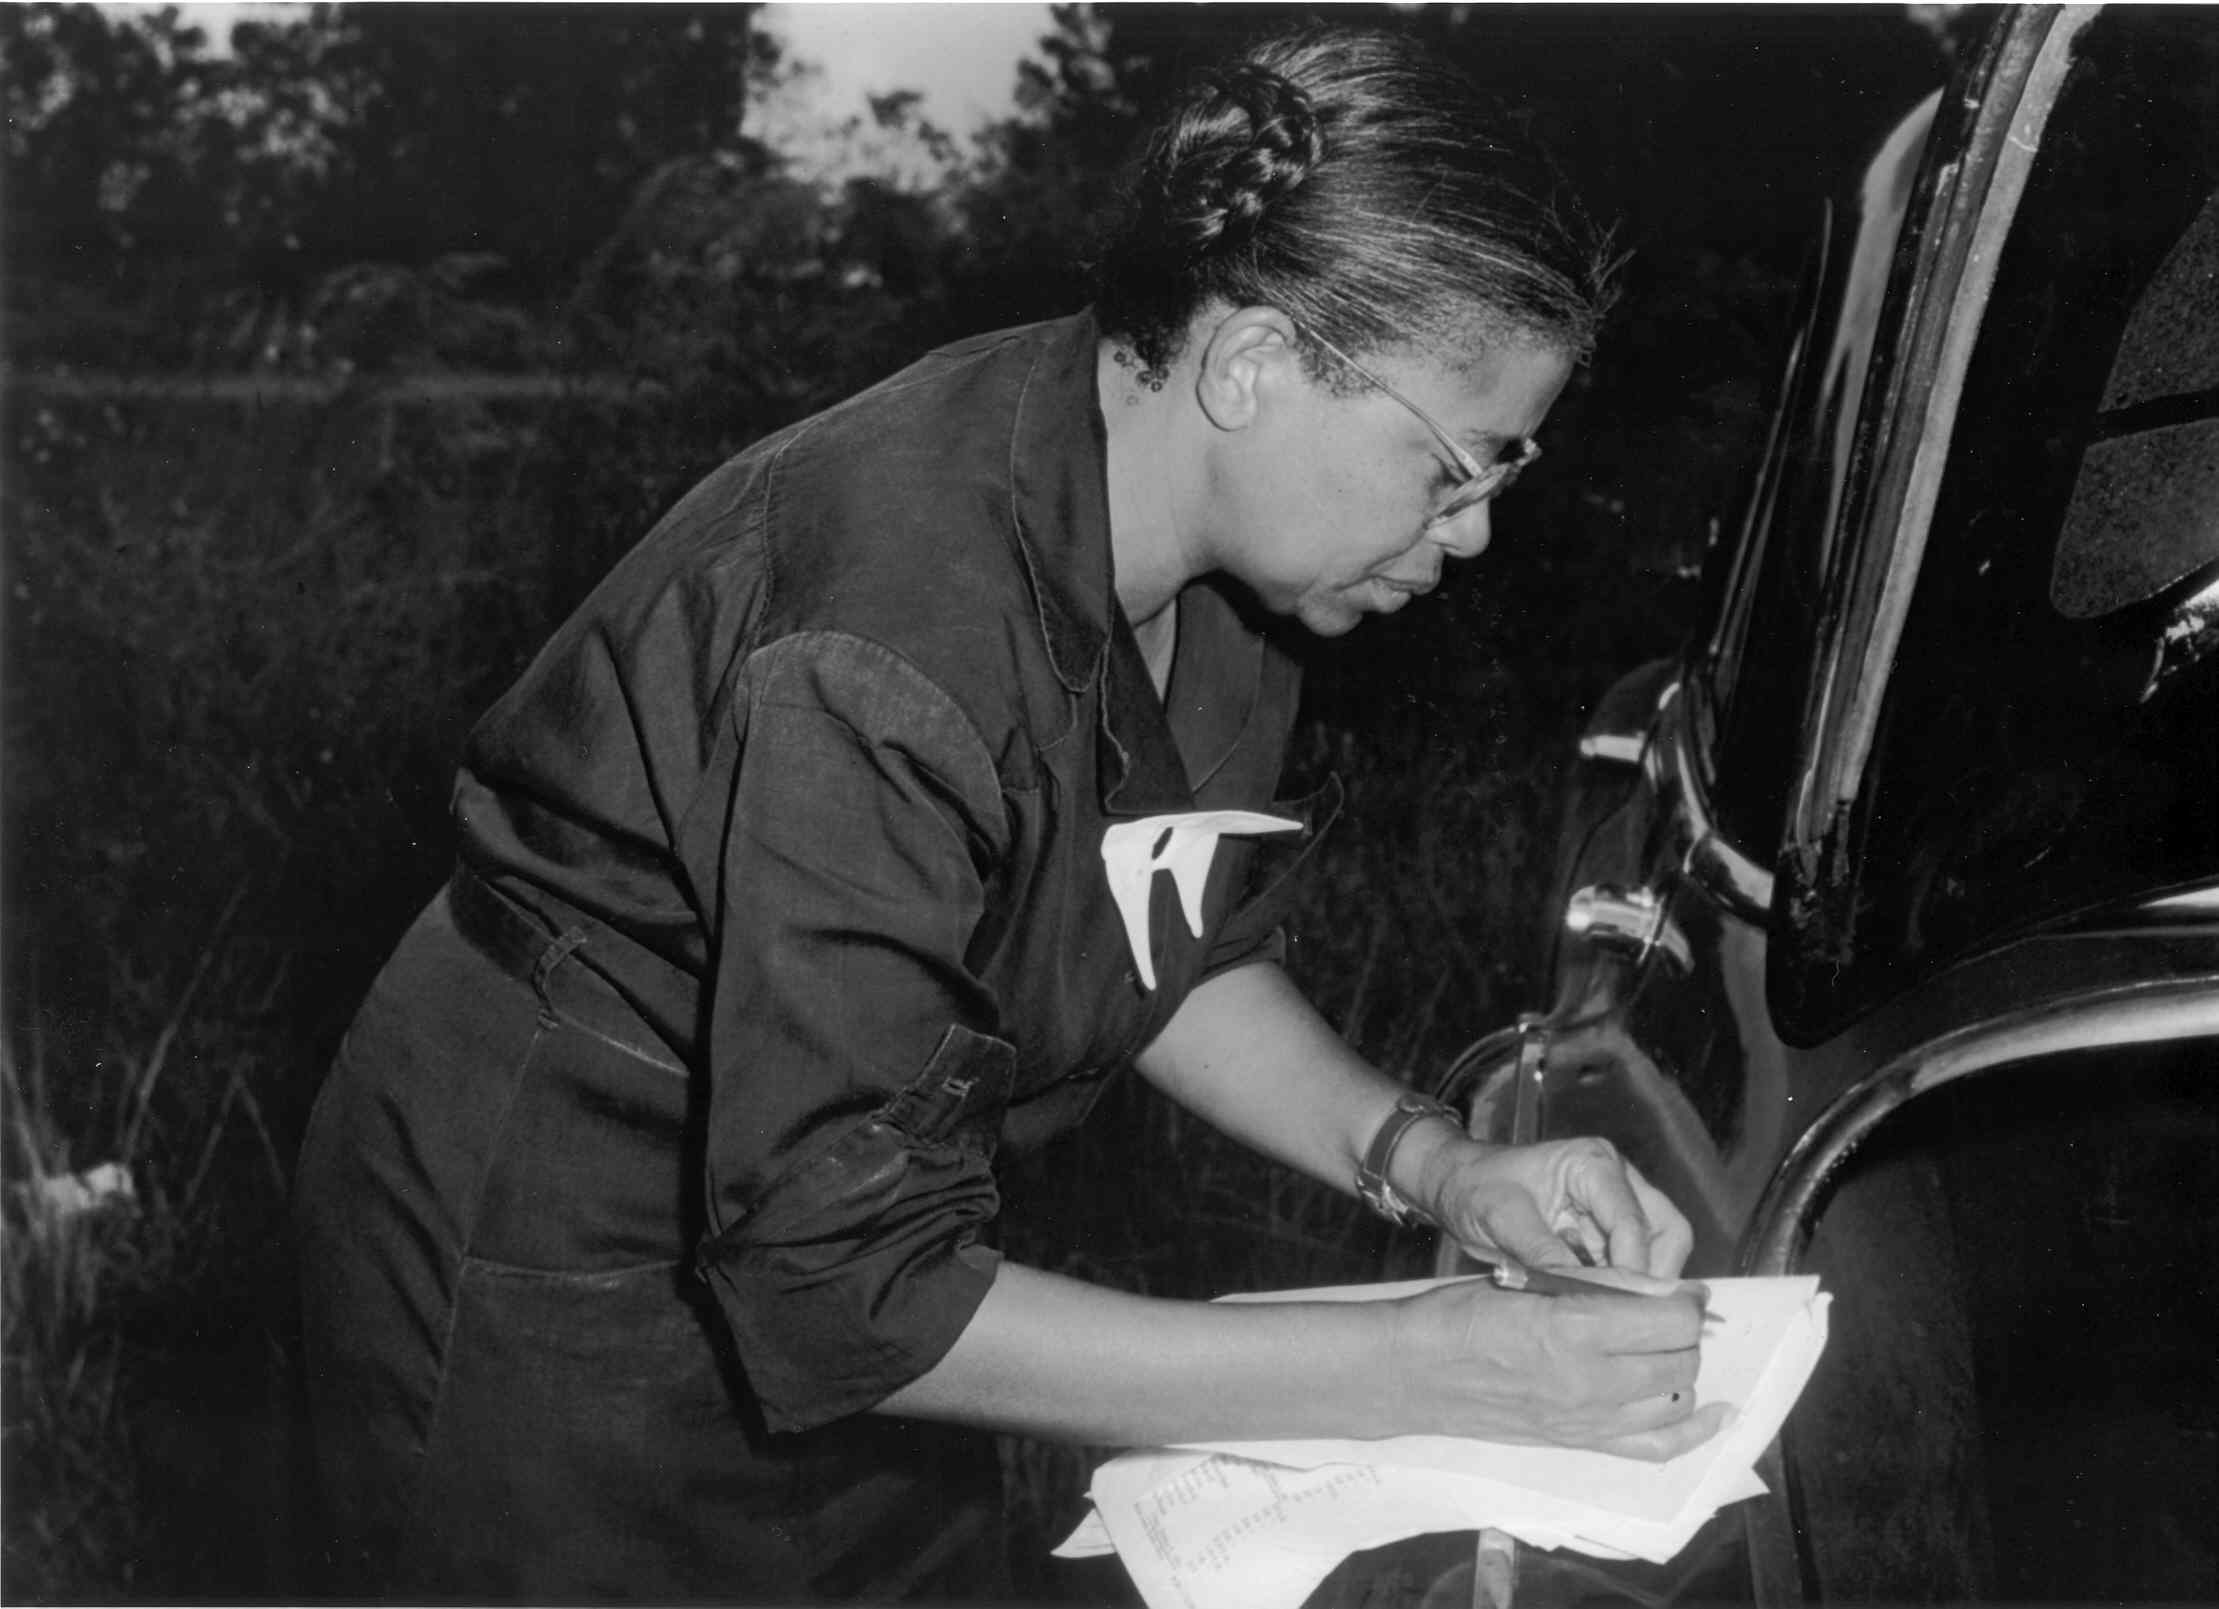 re ing nurse rivers voices in bioethics nurse eunice rivers filling out paper work image courtesy of national archives atlanta ga the tuskegee syphilis study s